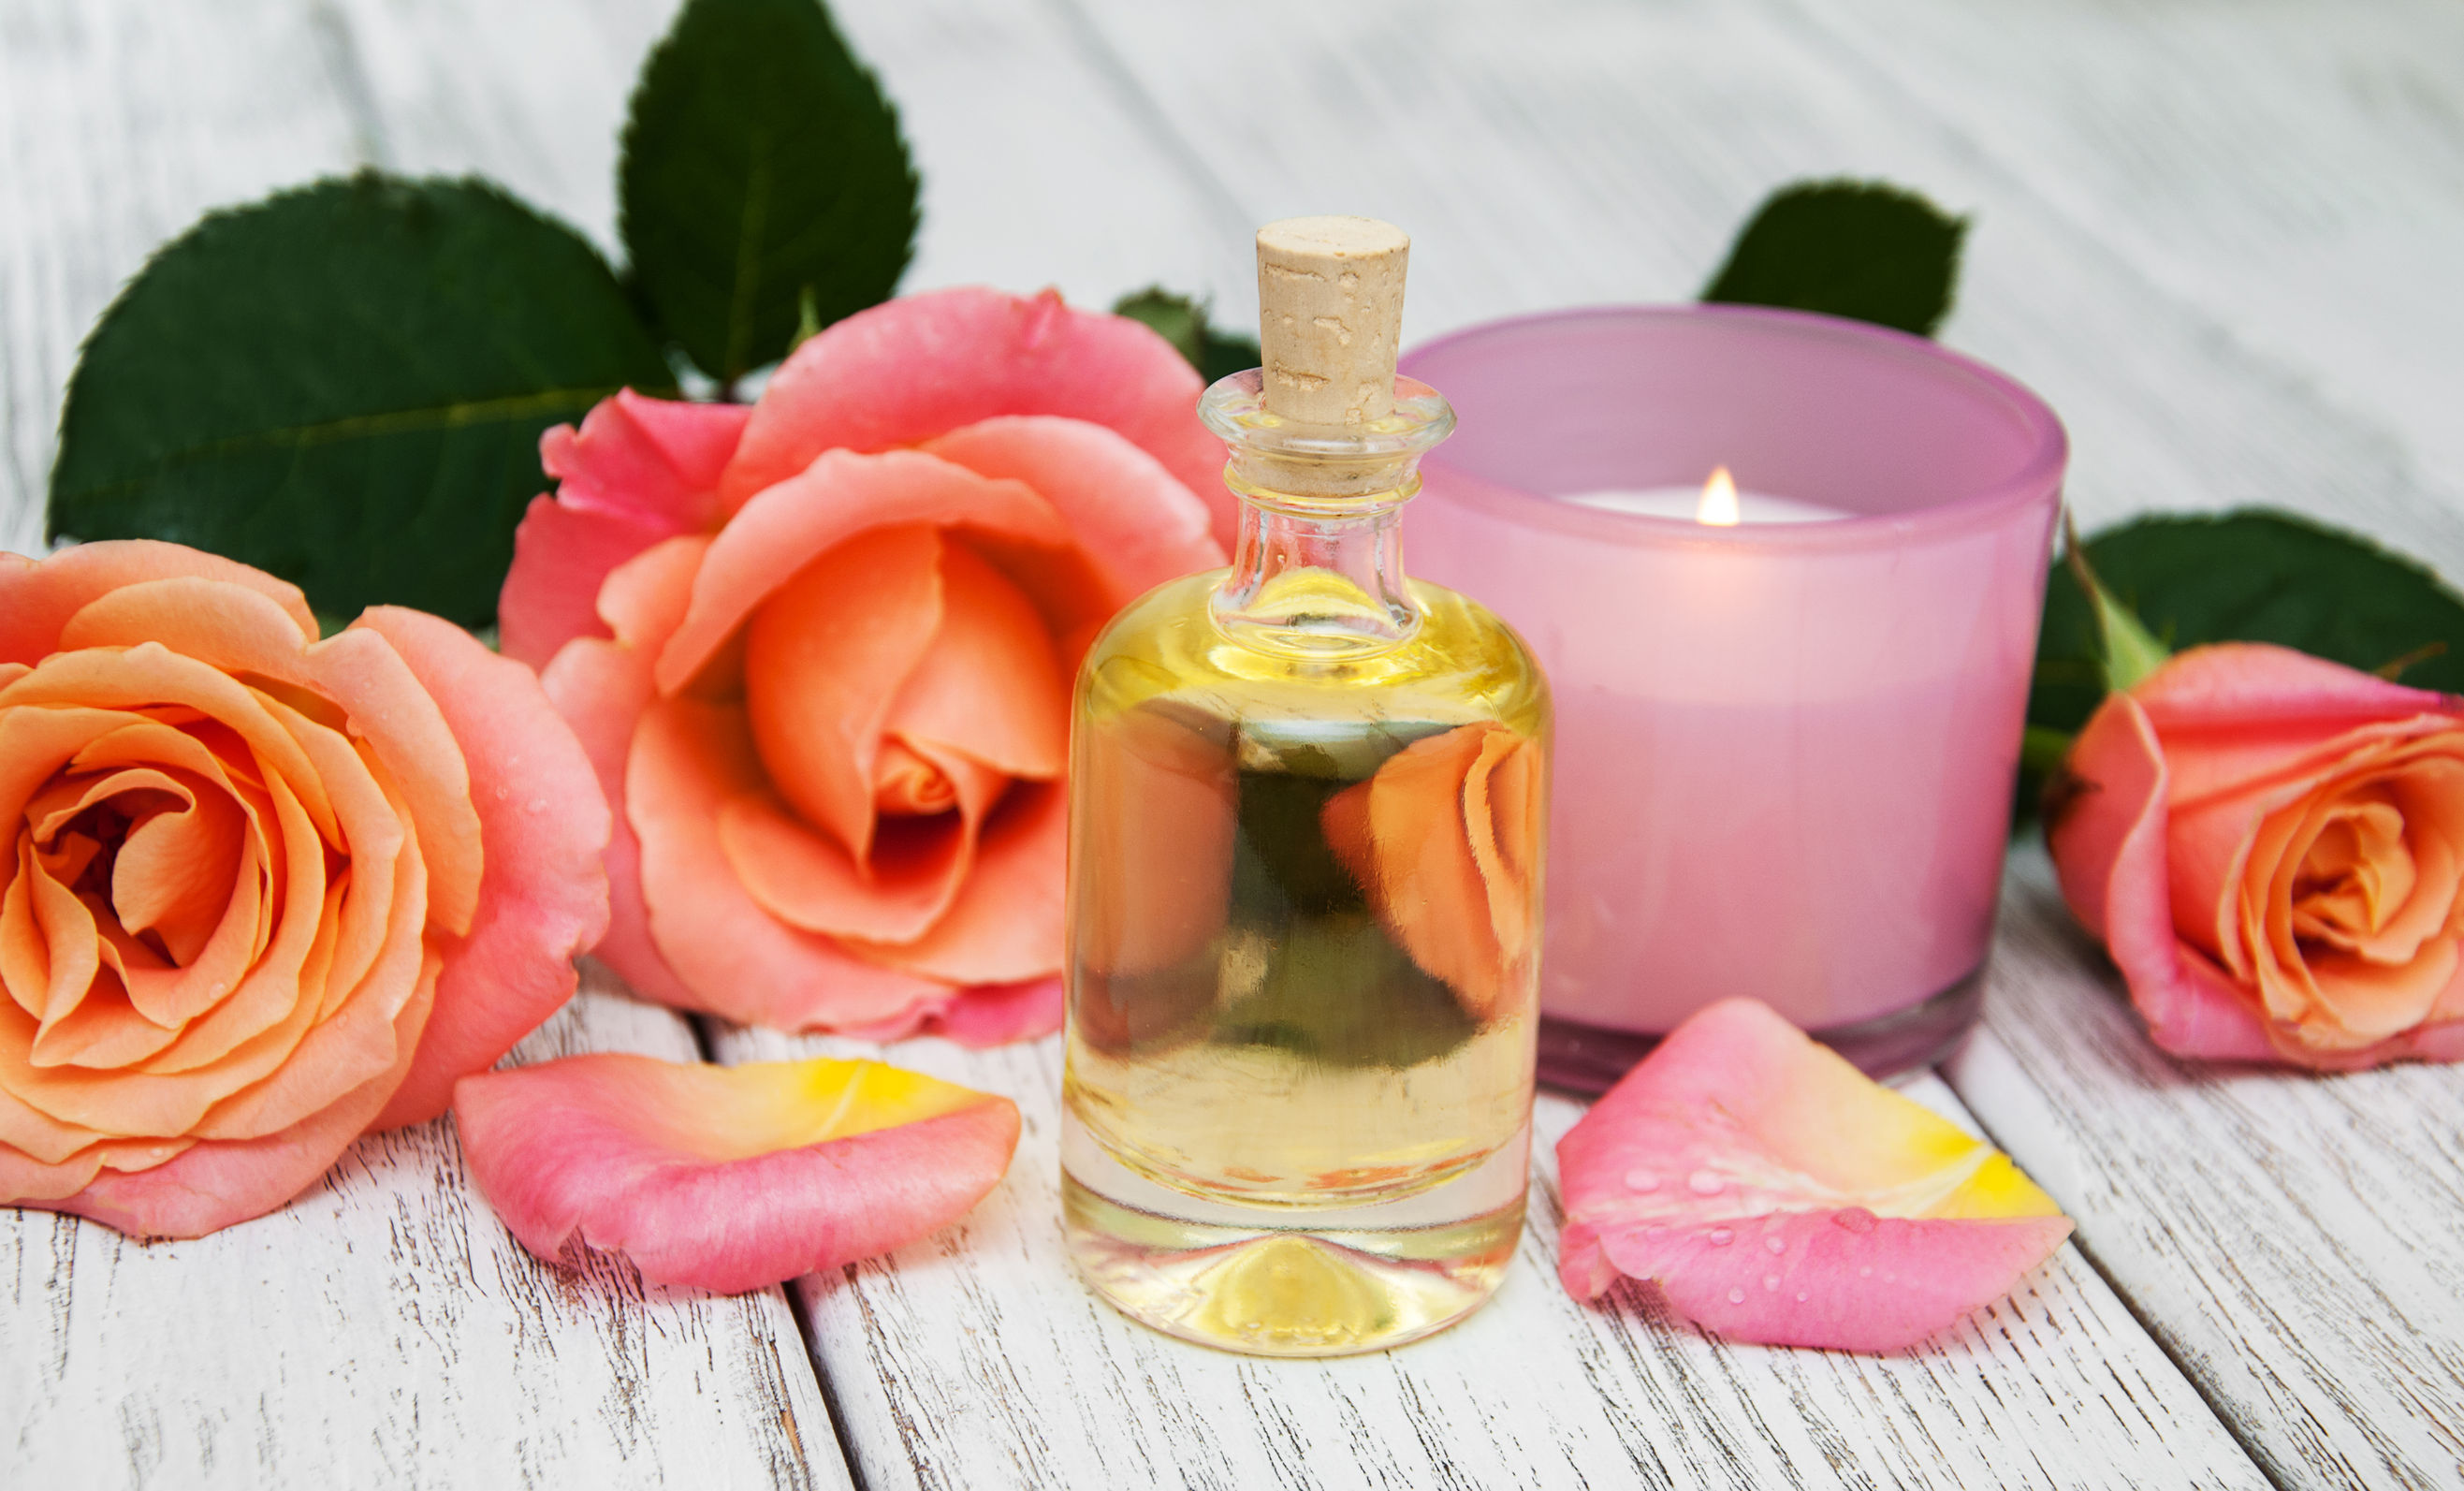 69538167 - spa concept with pink roses on a old wooden background